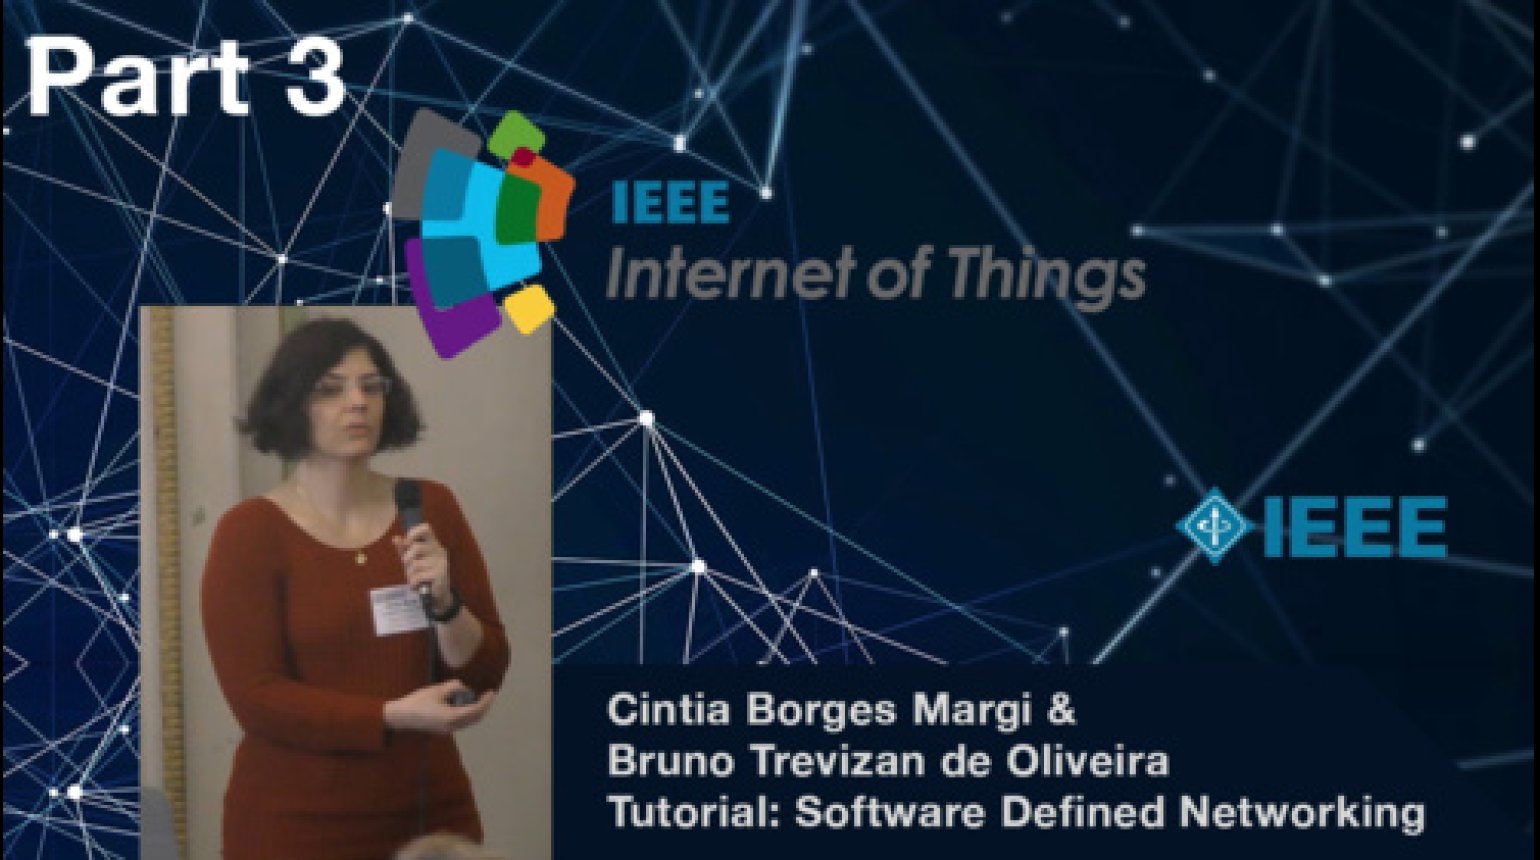 Tutorial on Software-defined Networking in the Wireless Sensor Networks and the IoT Context - Bruno Trevizan de Oliveira and Cintia Borges Margi, IEEE WF-IoT 2015